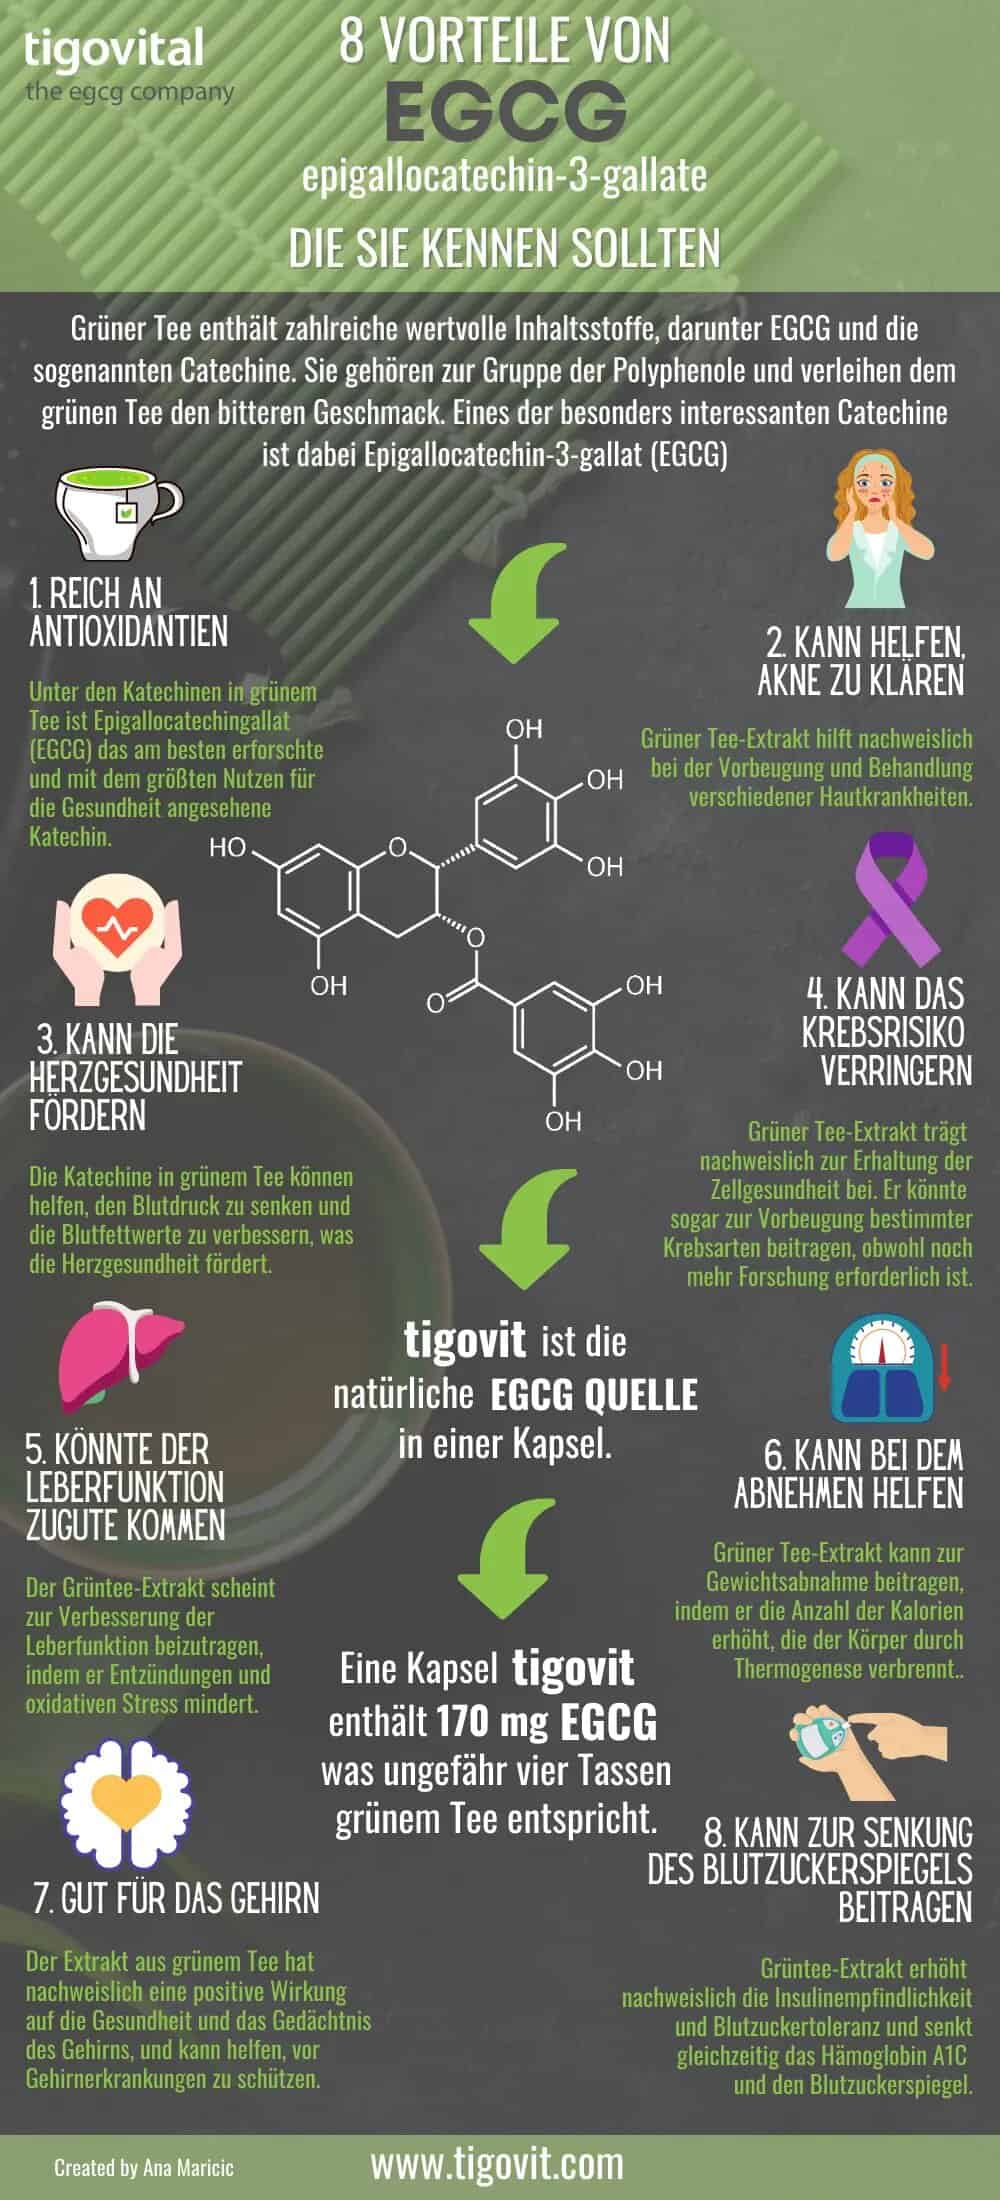 8 benefits of EGCG you should know about